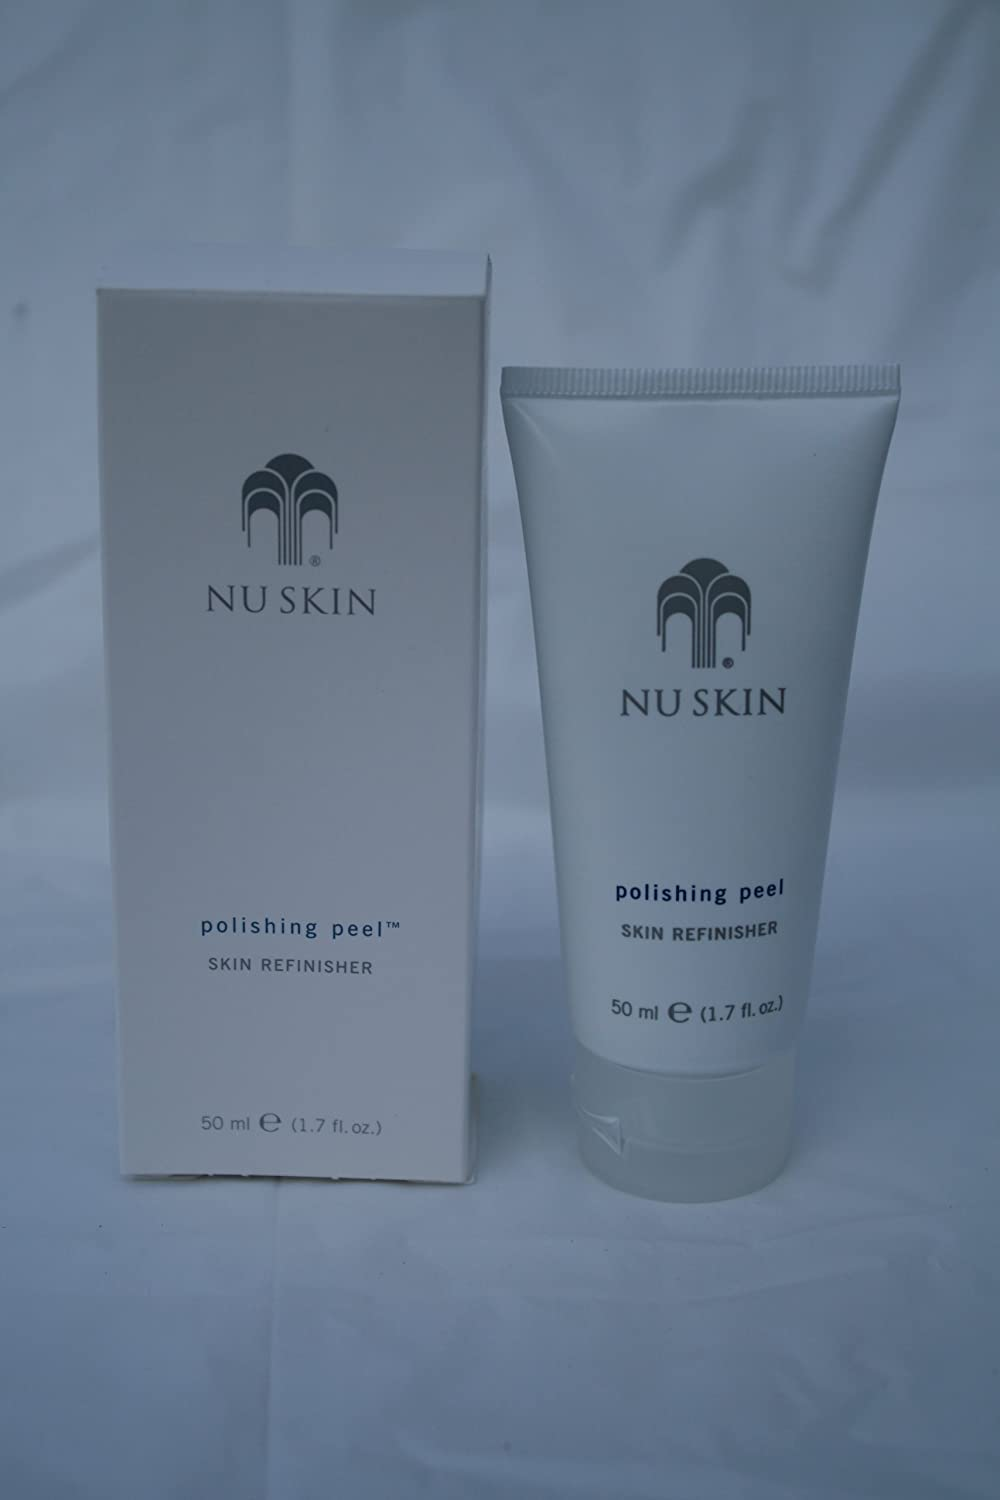 Nu Skin Polishing Peel Skin Refinisher 1.7 Oz by NSE Products INC 01101215